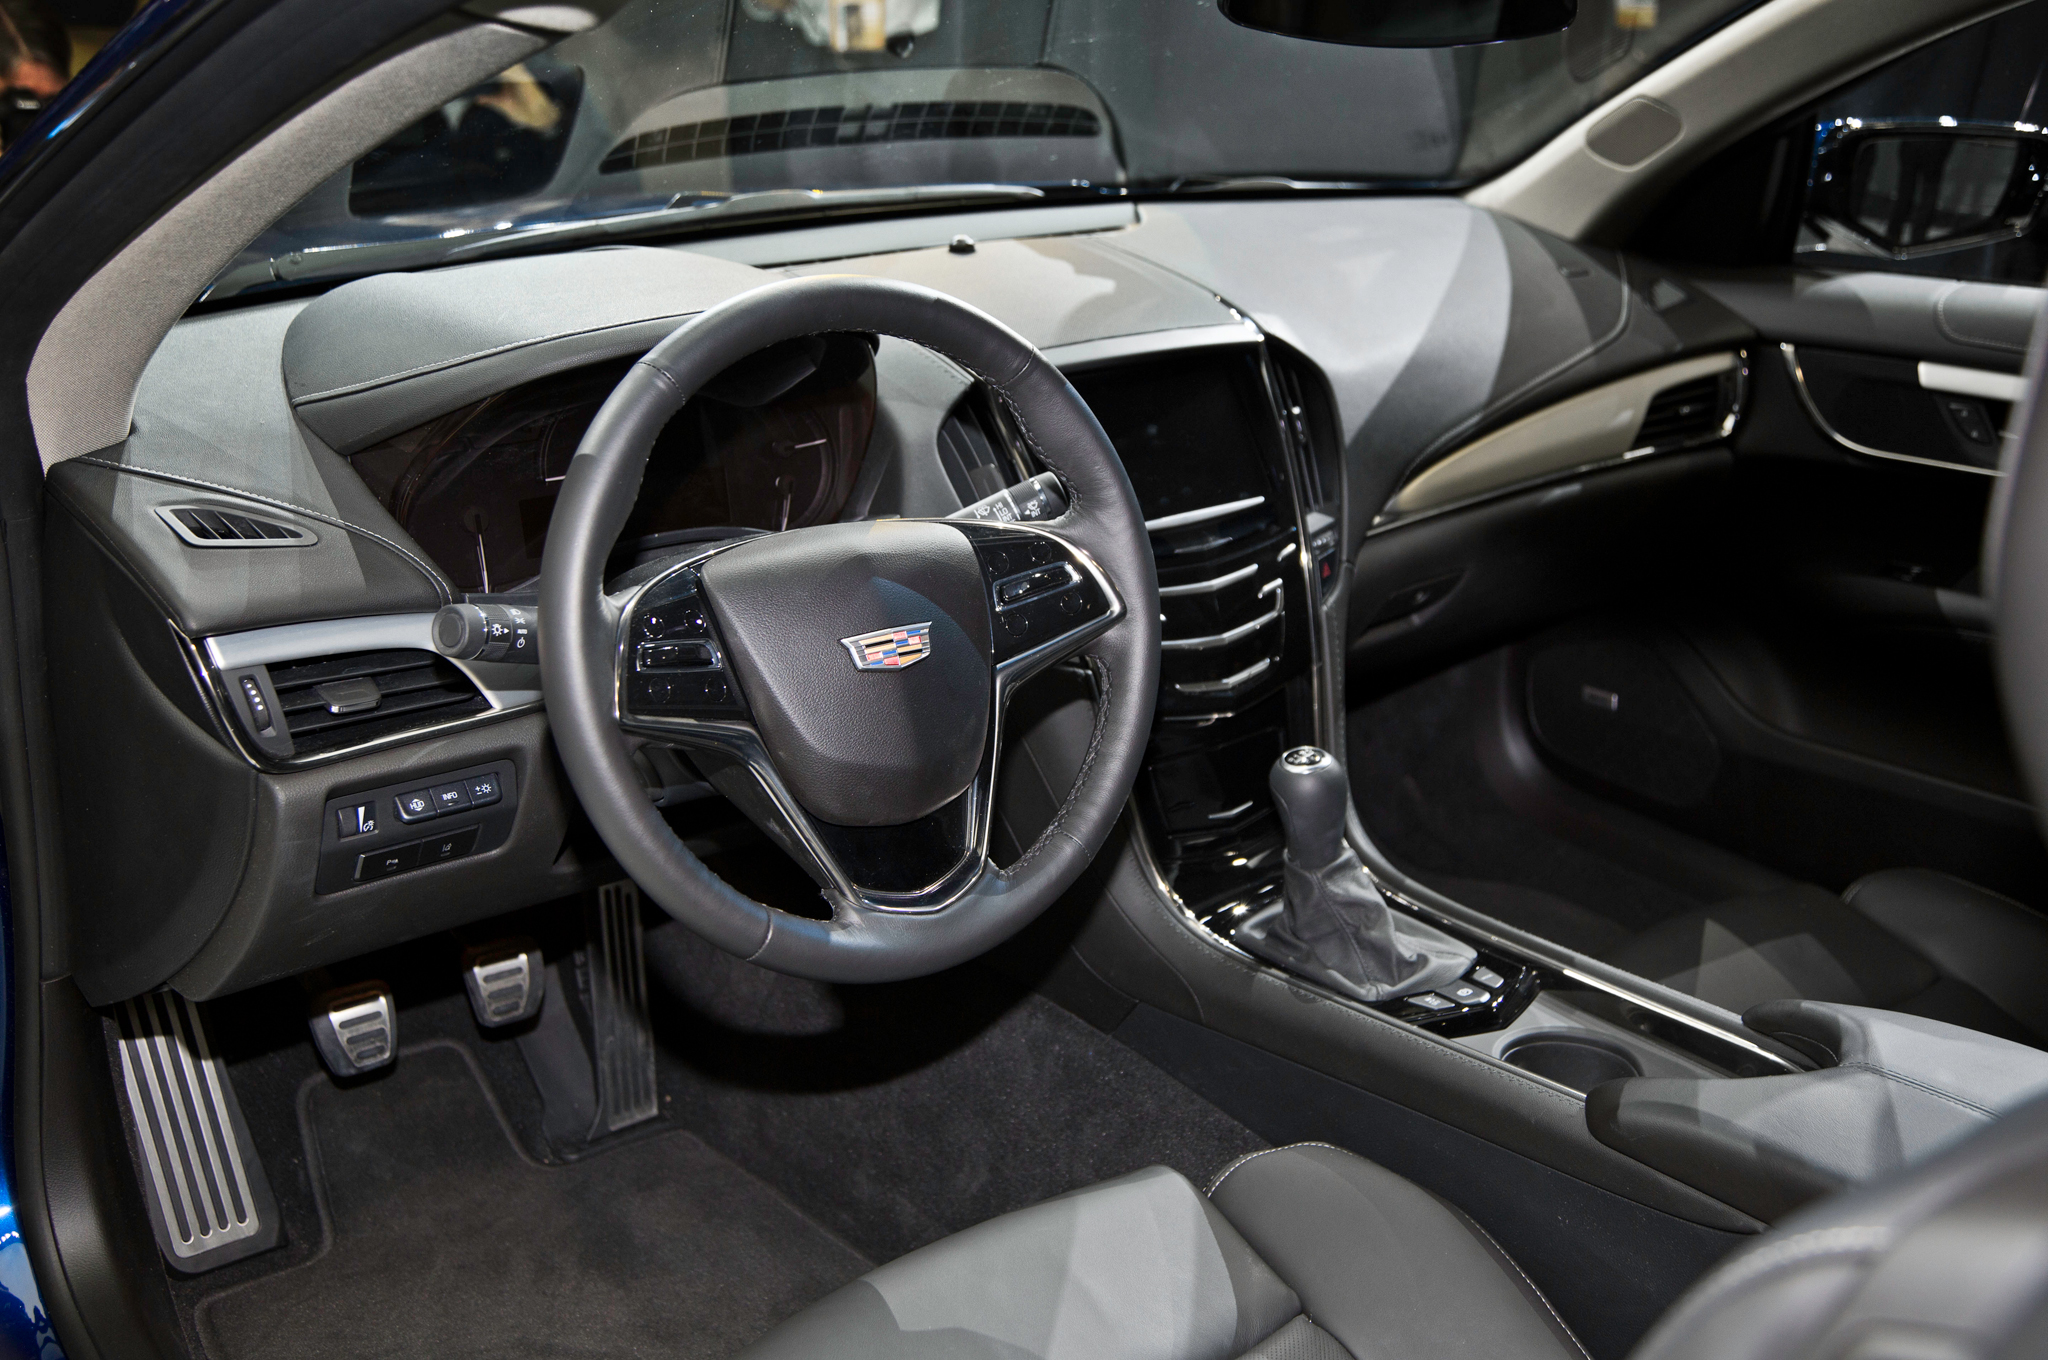 2015 Cadillac Ats Coupe Dashboard And Cockpit (View 15 of 21)